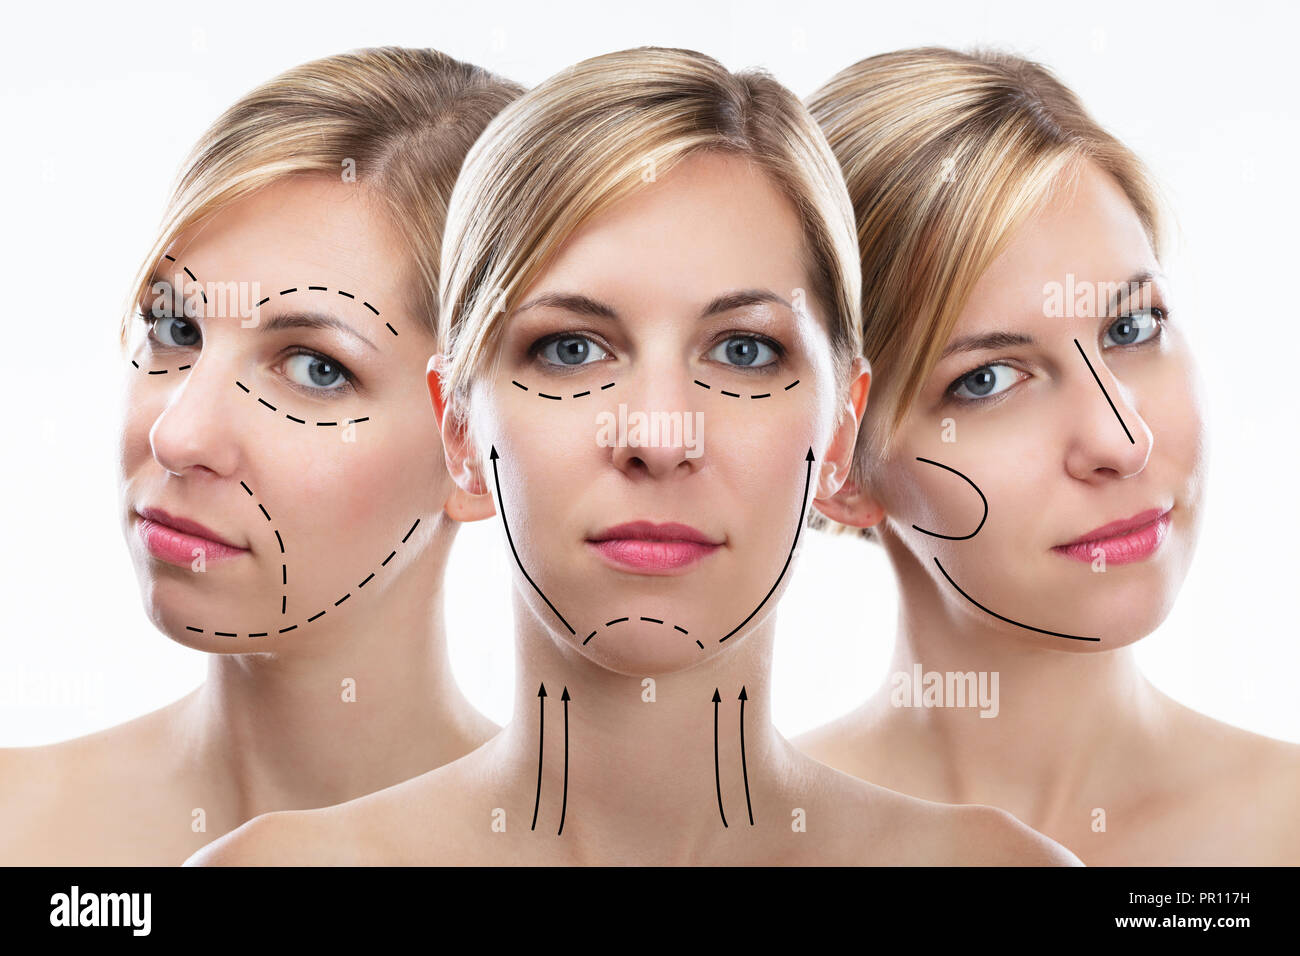 Multiple Exposure Of Pretty Young Woman's Face With Correction Lines Stock Photo